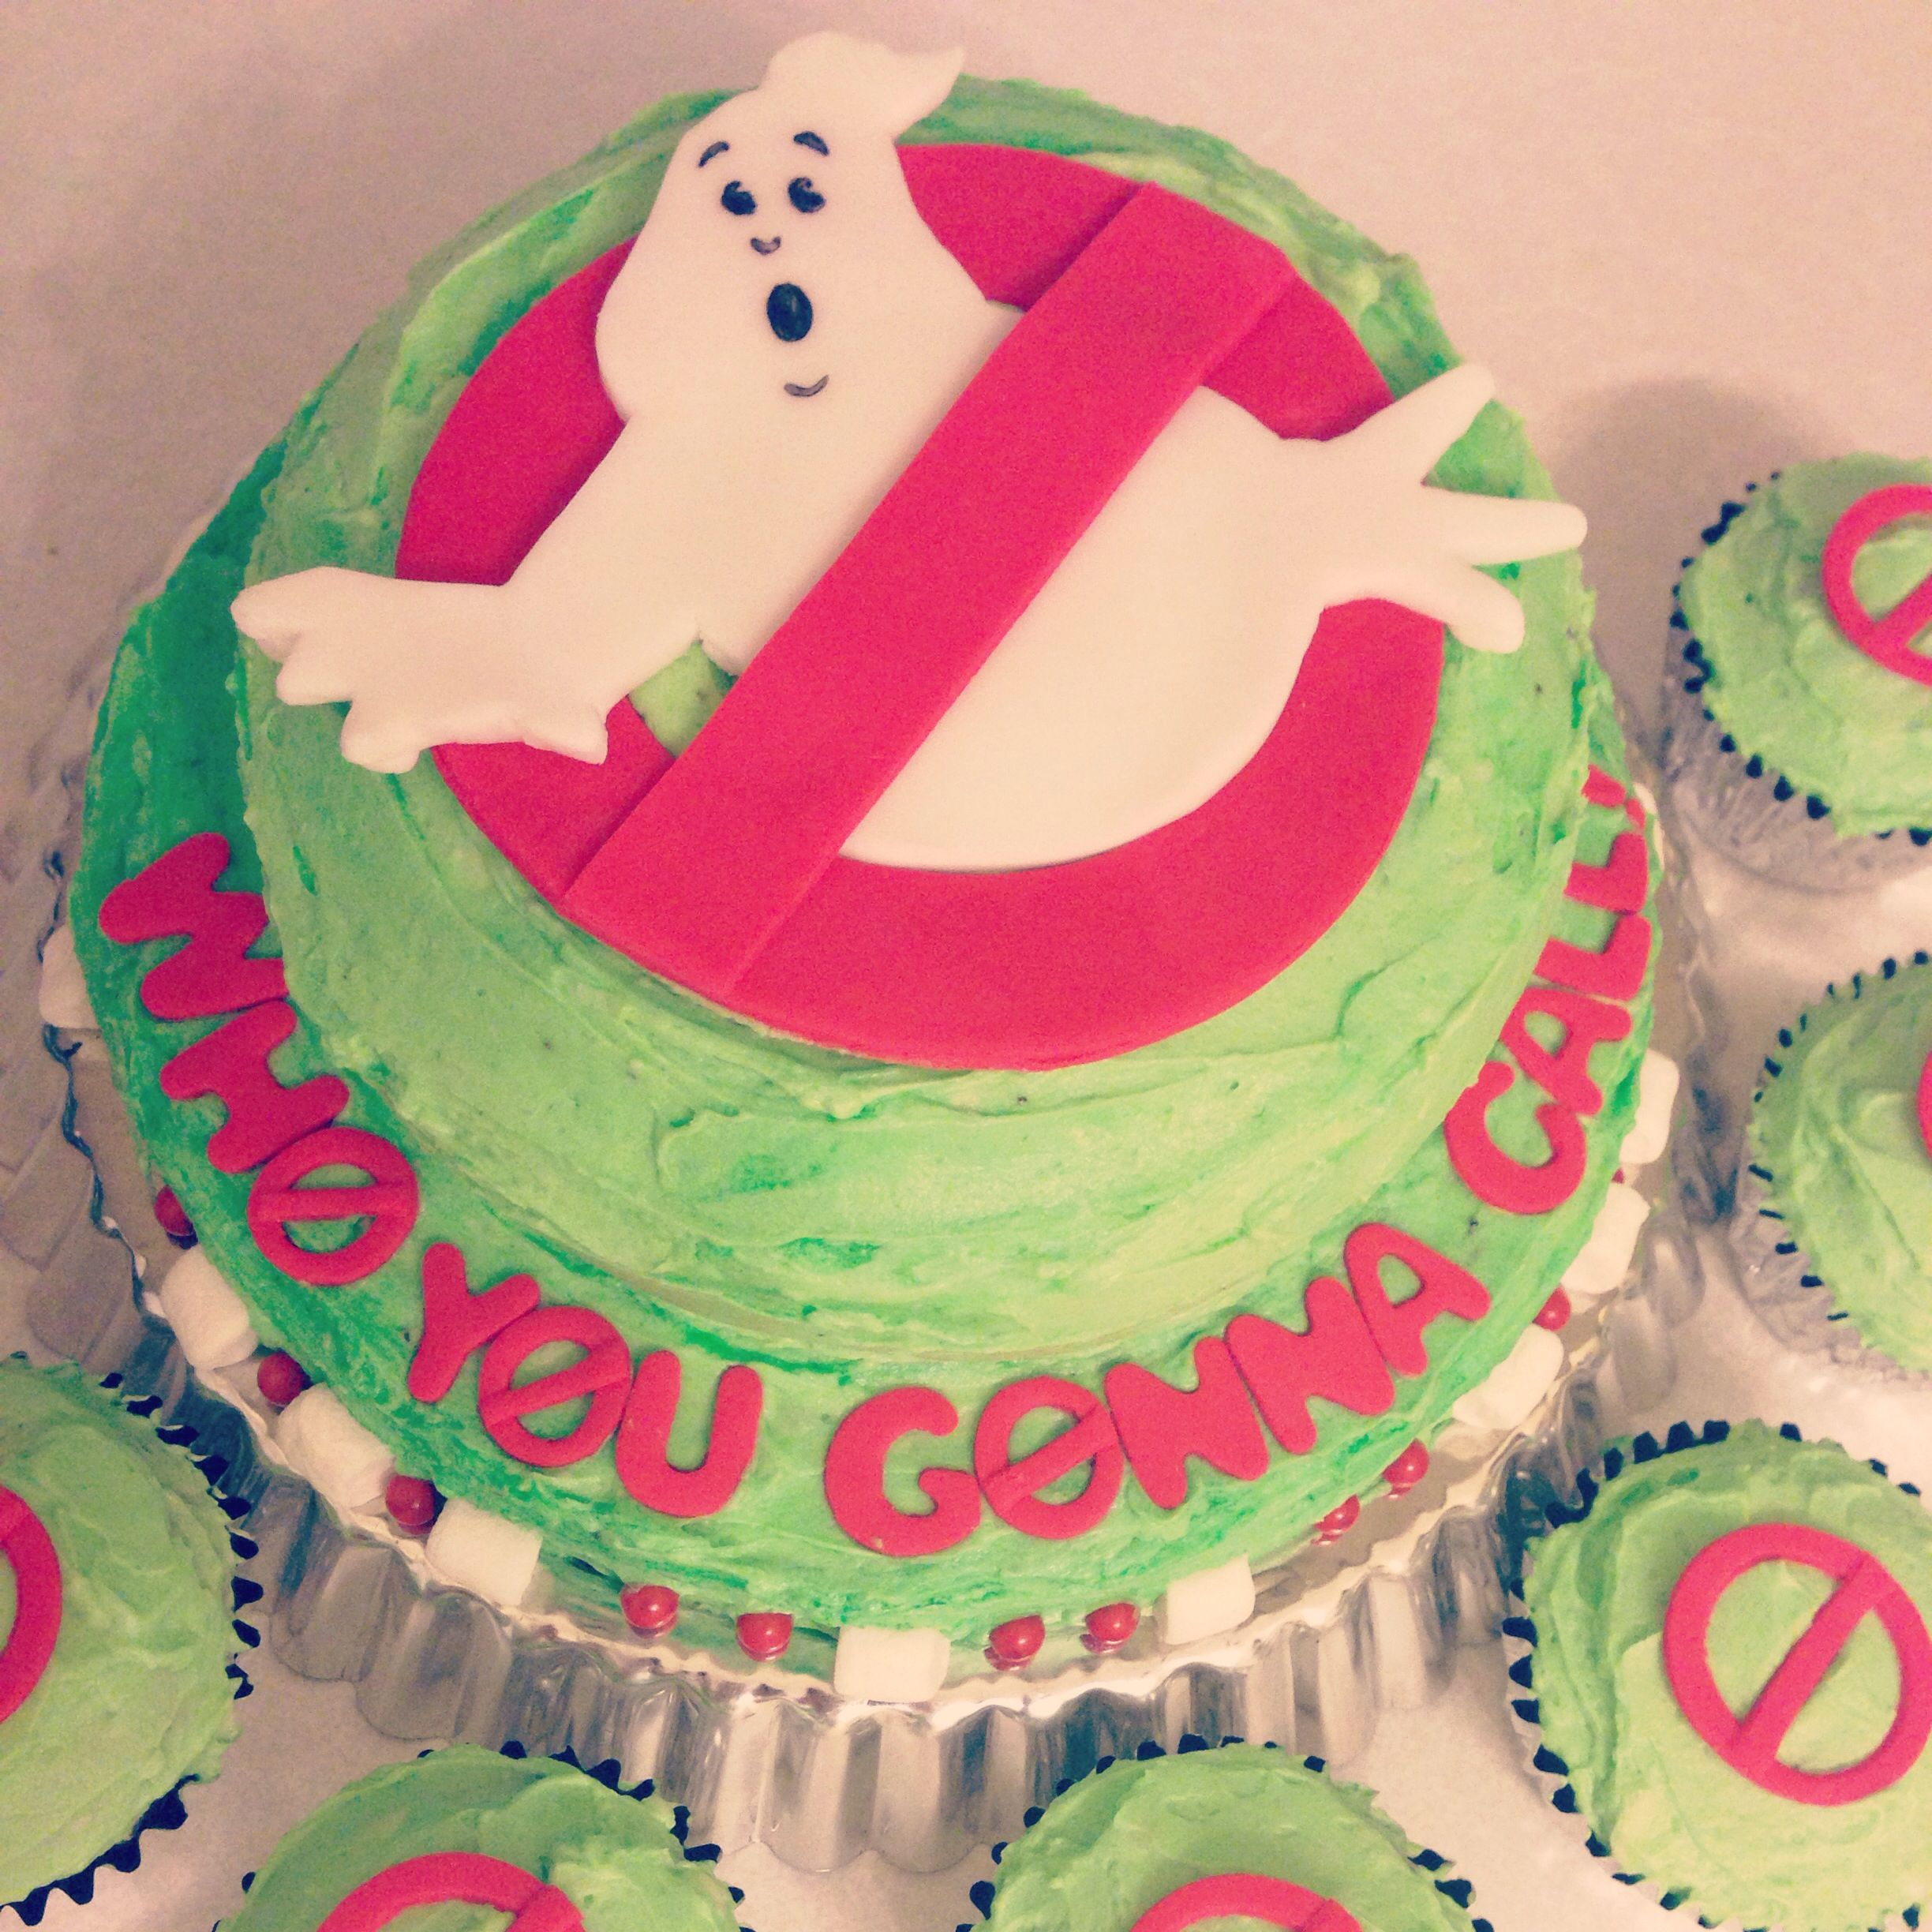 Kuchen Party Ghostbusters Cake And Cupcakes Birthday Ideas